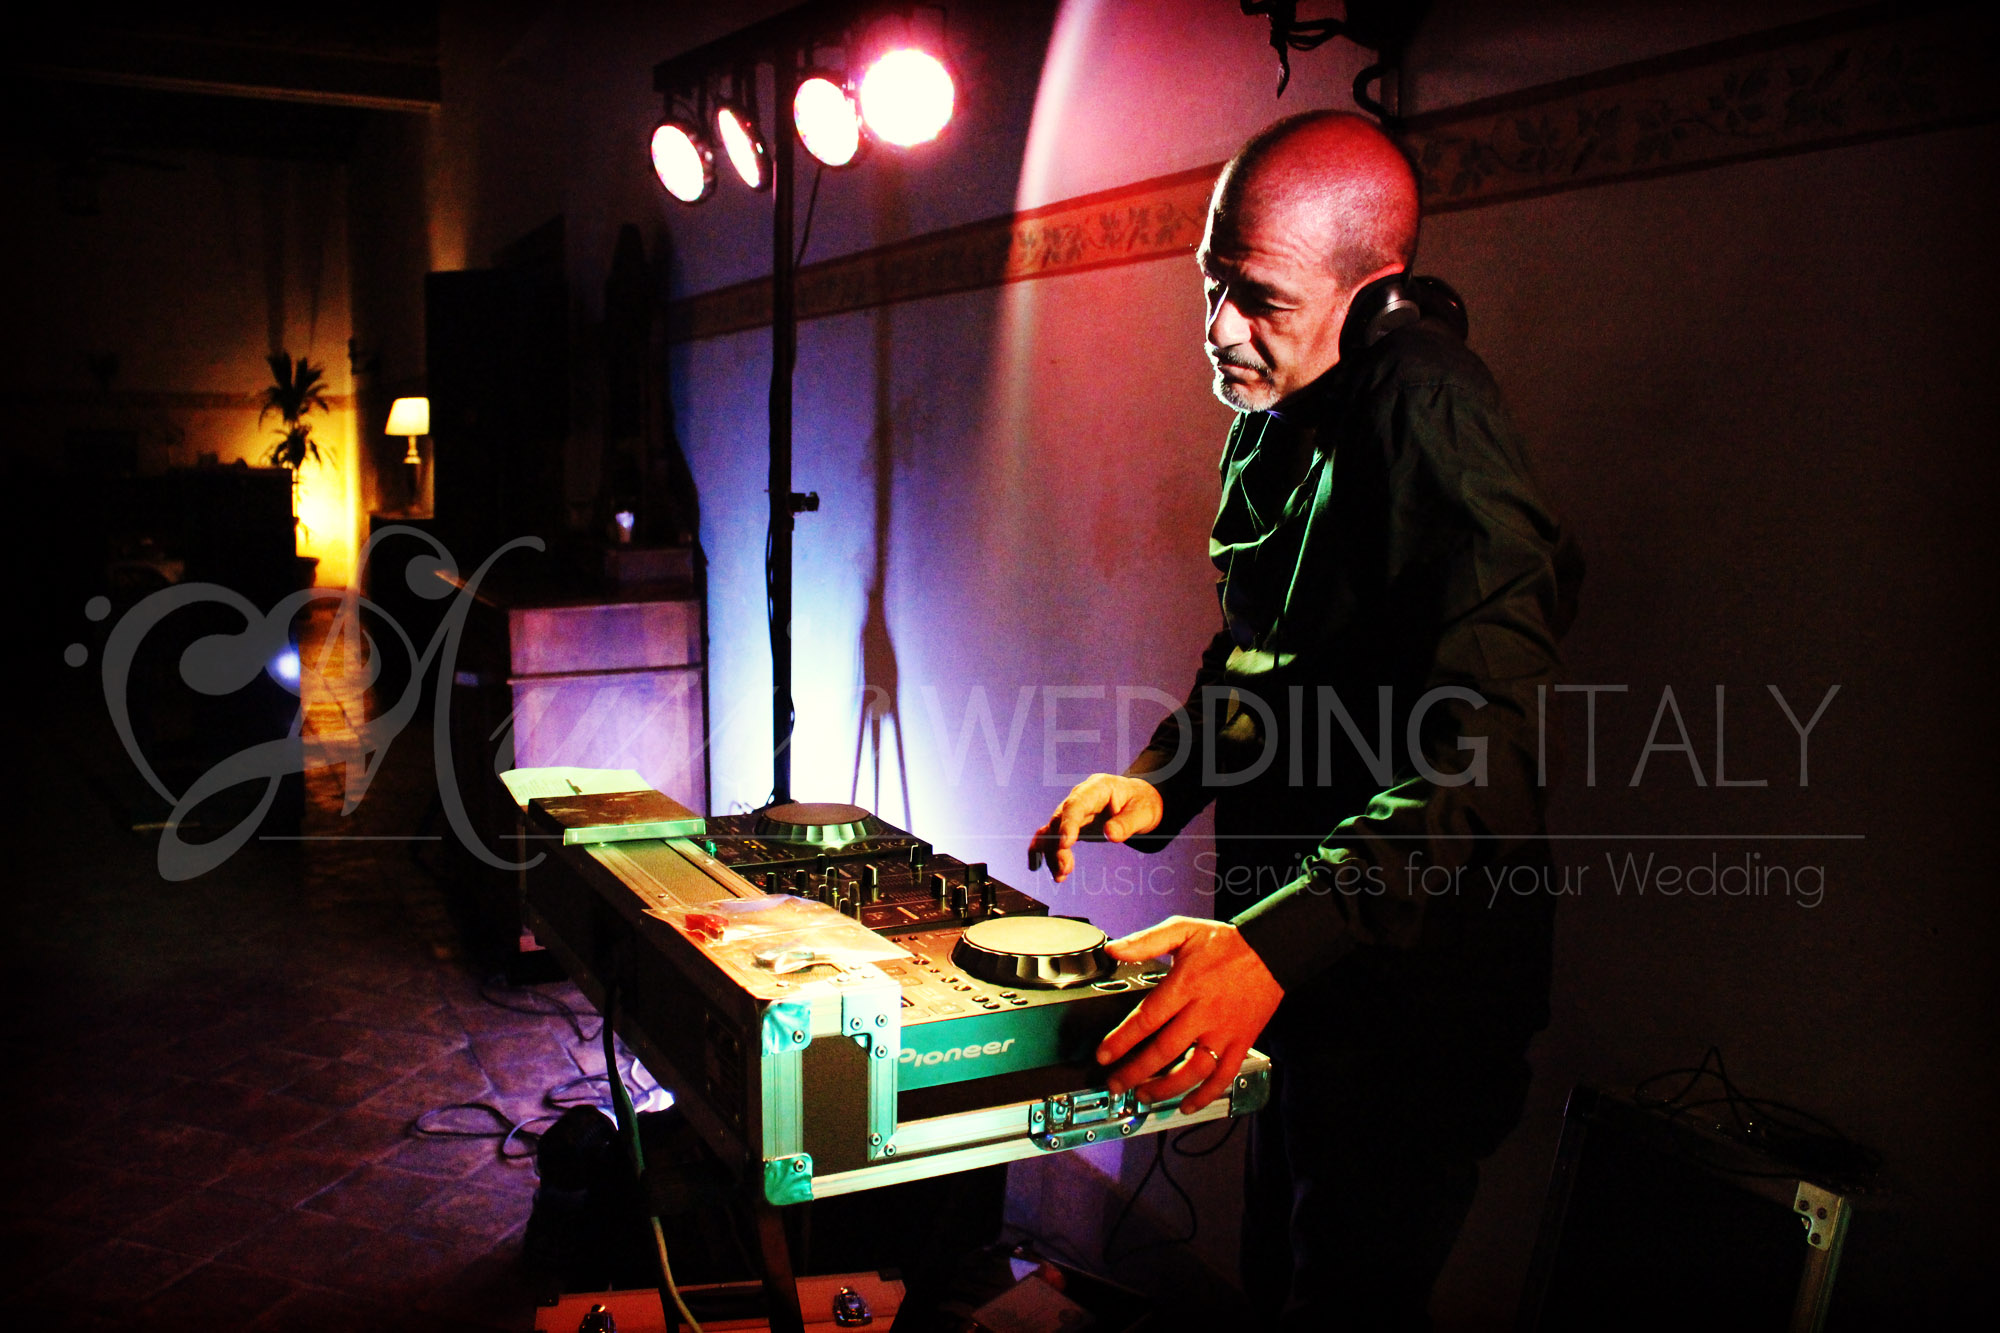 Dj in italy - weddingdj - dj per matrimoni